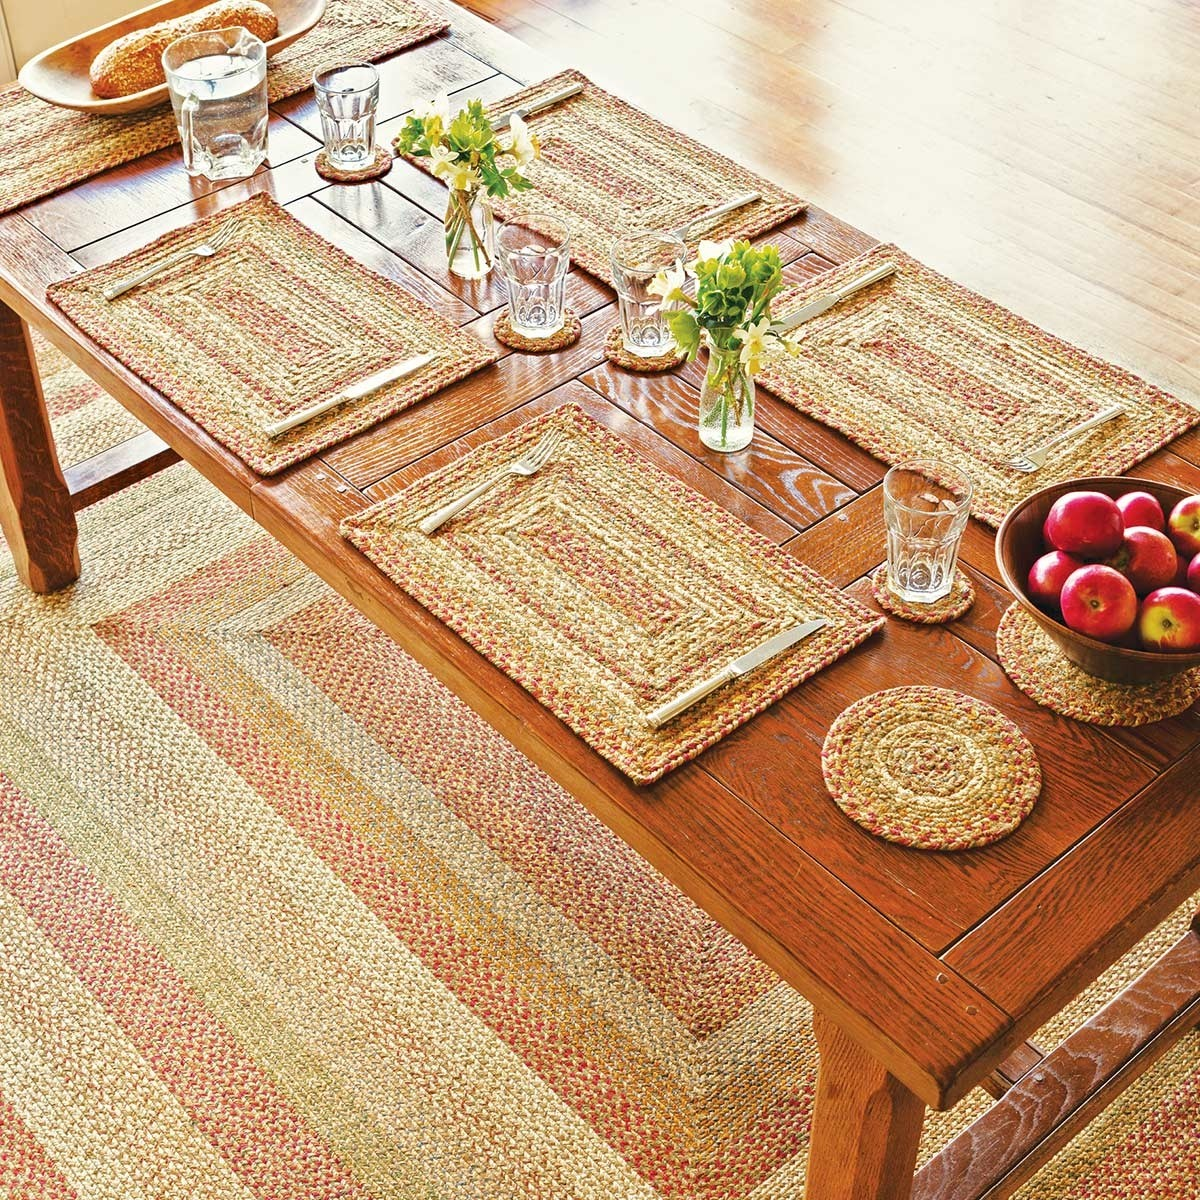 Wholesale Country Primitive Home Decor: Harvest Beige Jute Braided Rugs